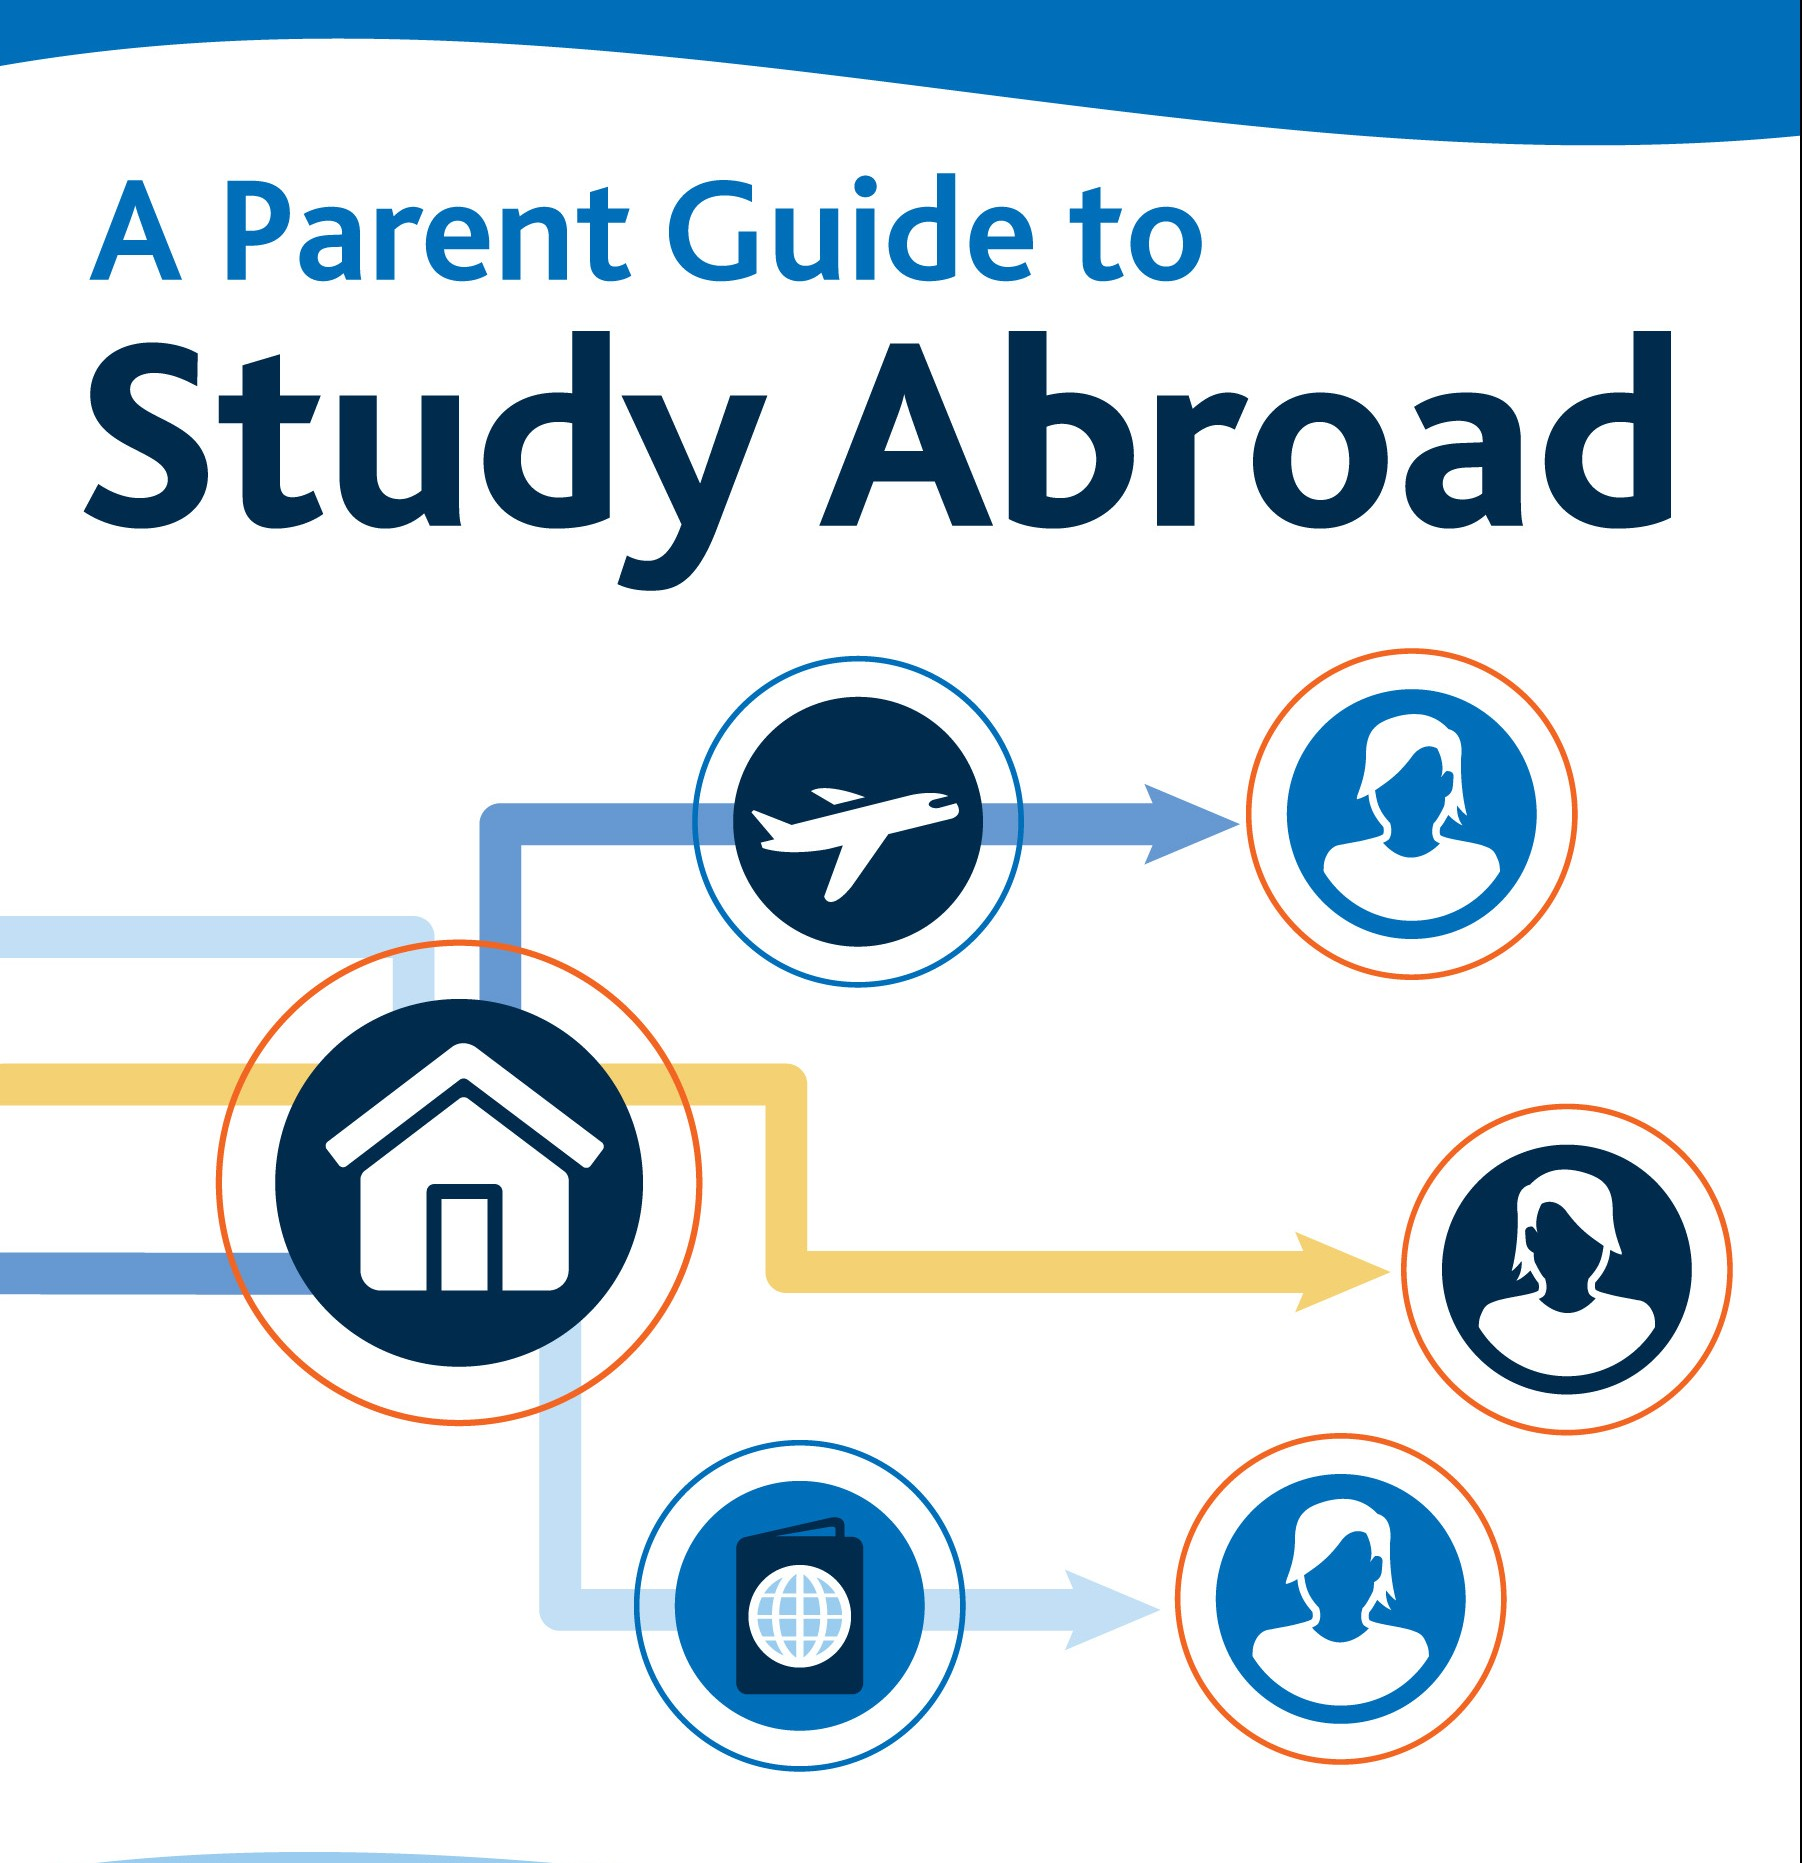 A Parent Guide to Study Abroad cover